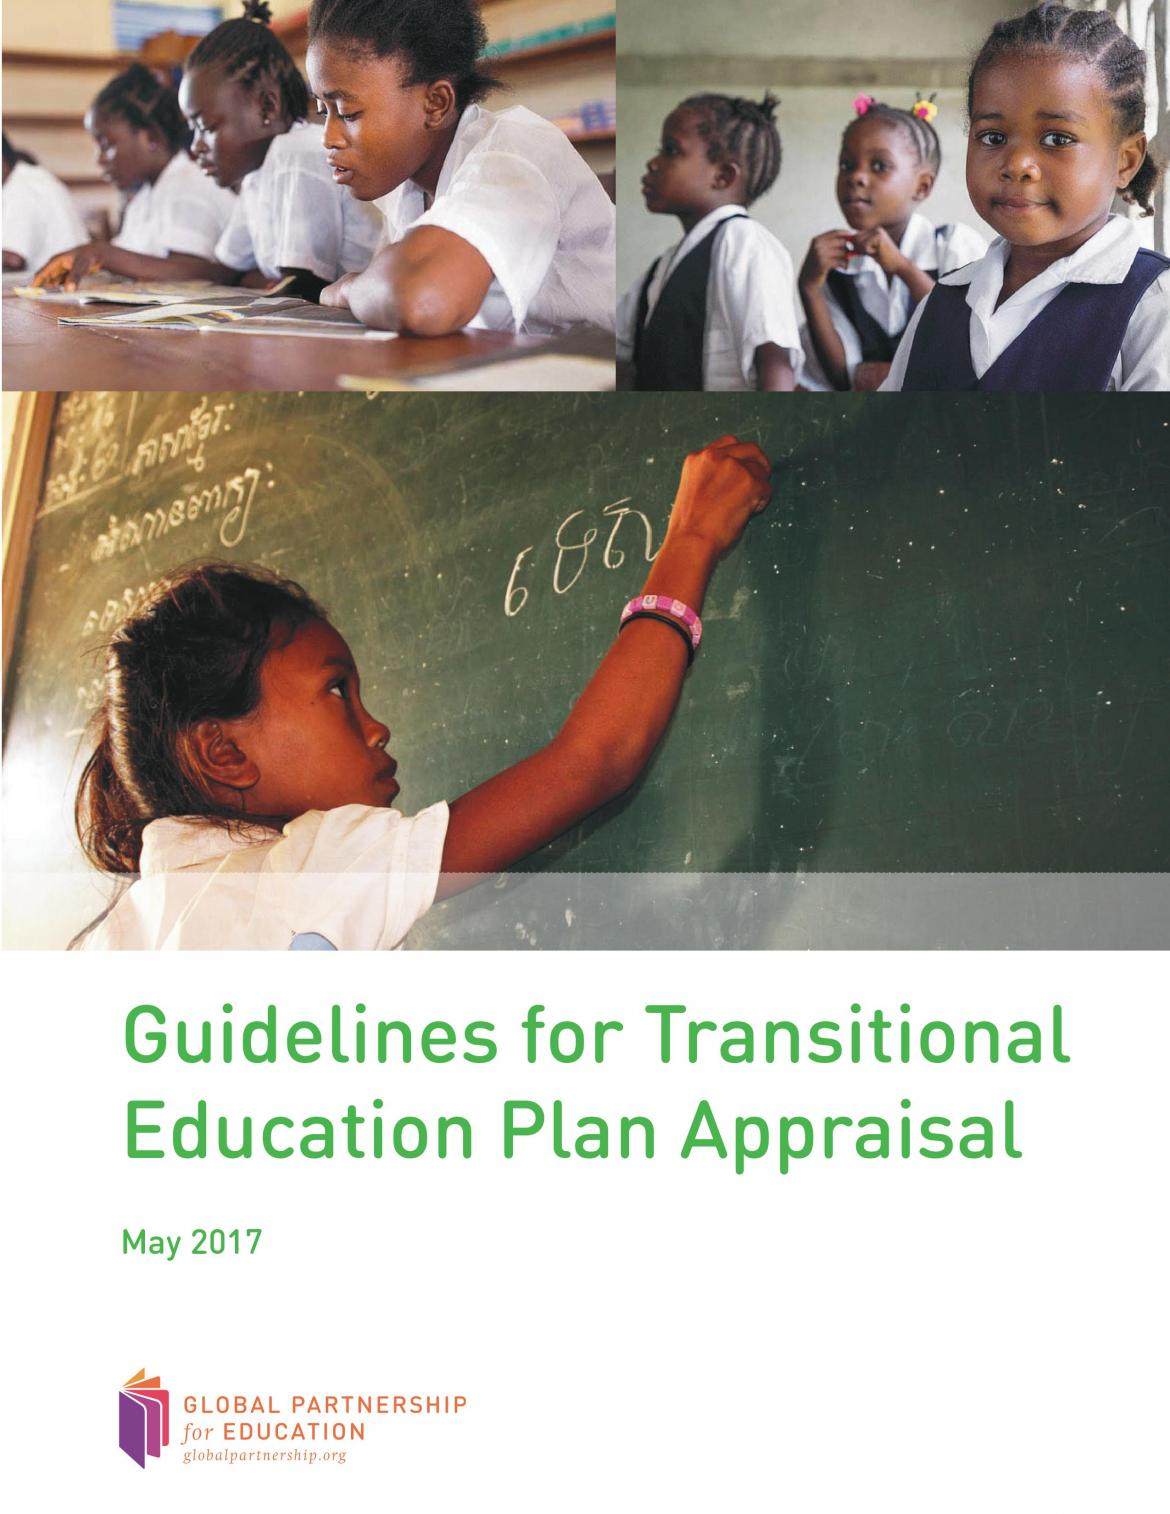 Guidelines for transitional education plan appraisal